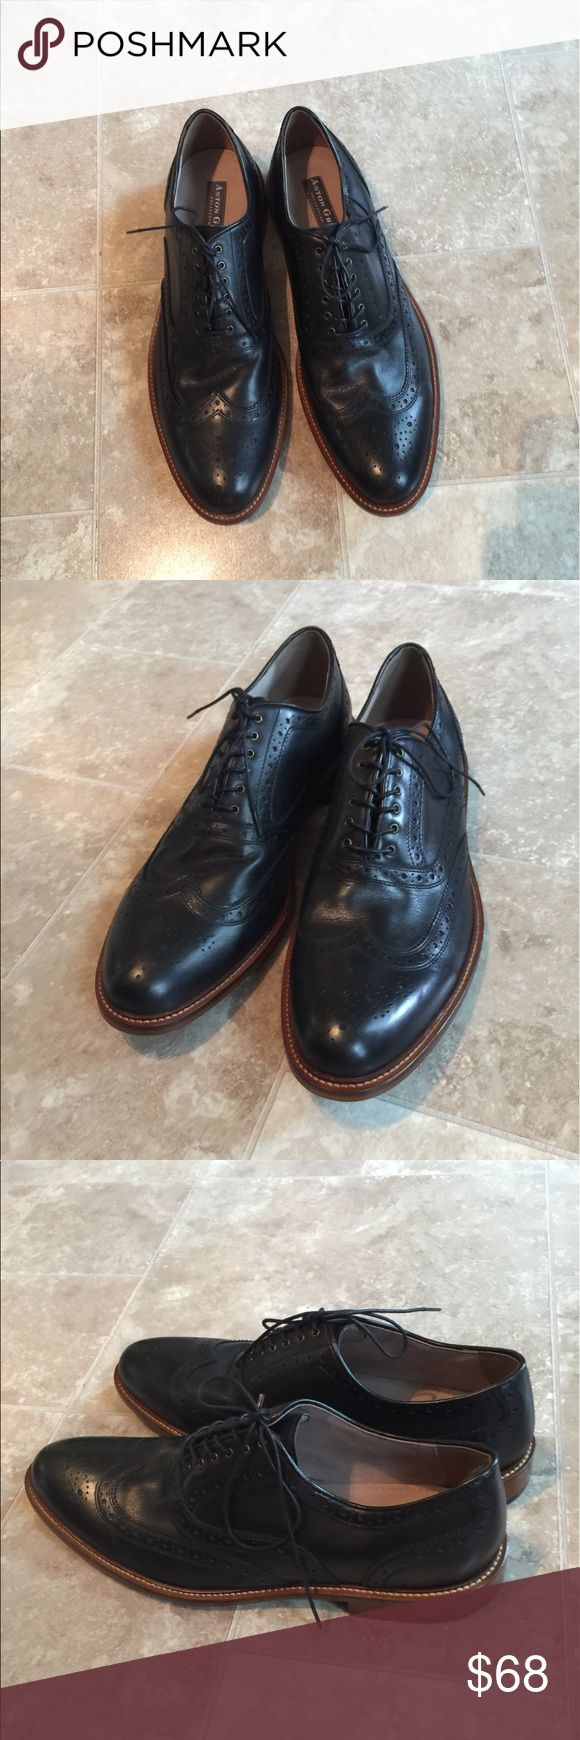 Aston Grey men's dress shoes size 13 Black. Size 13. Never worn! Aston Grey Shoes Loafers & Slip-Ons